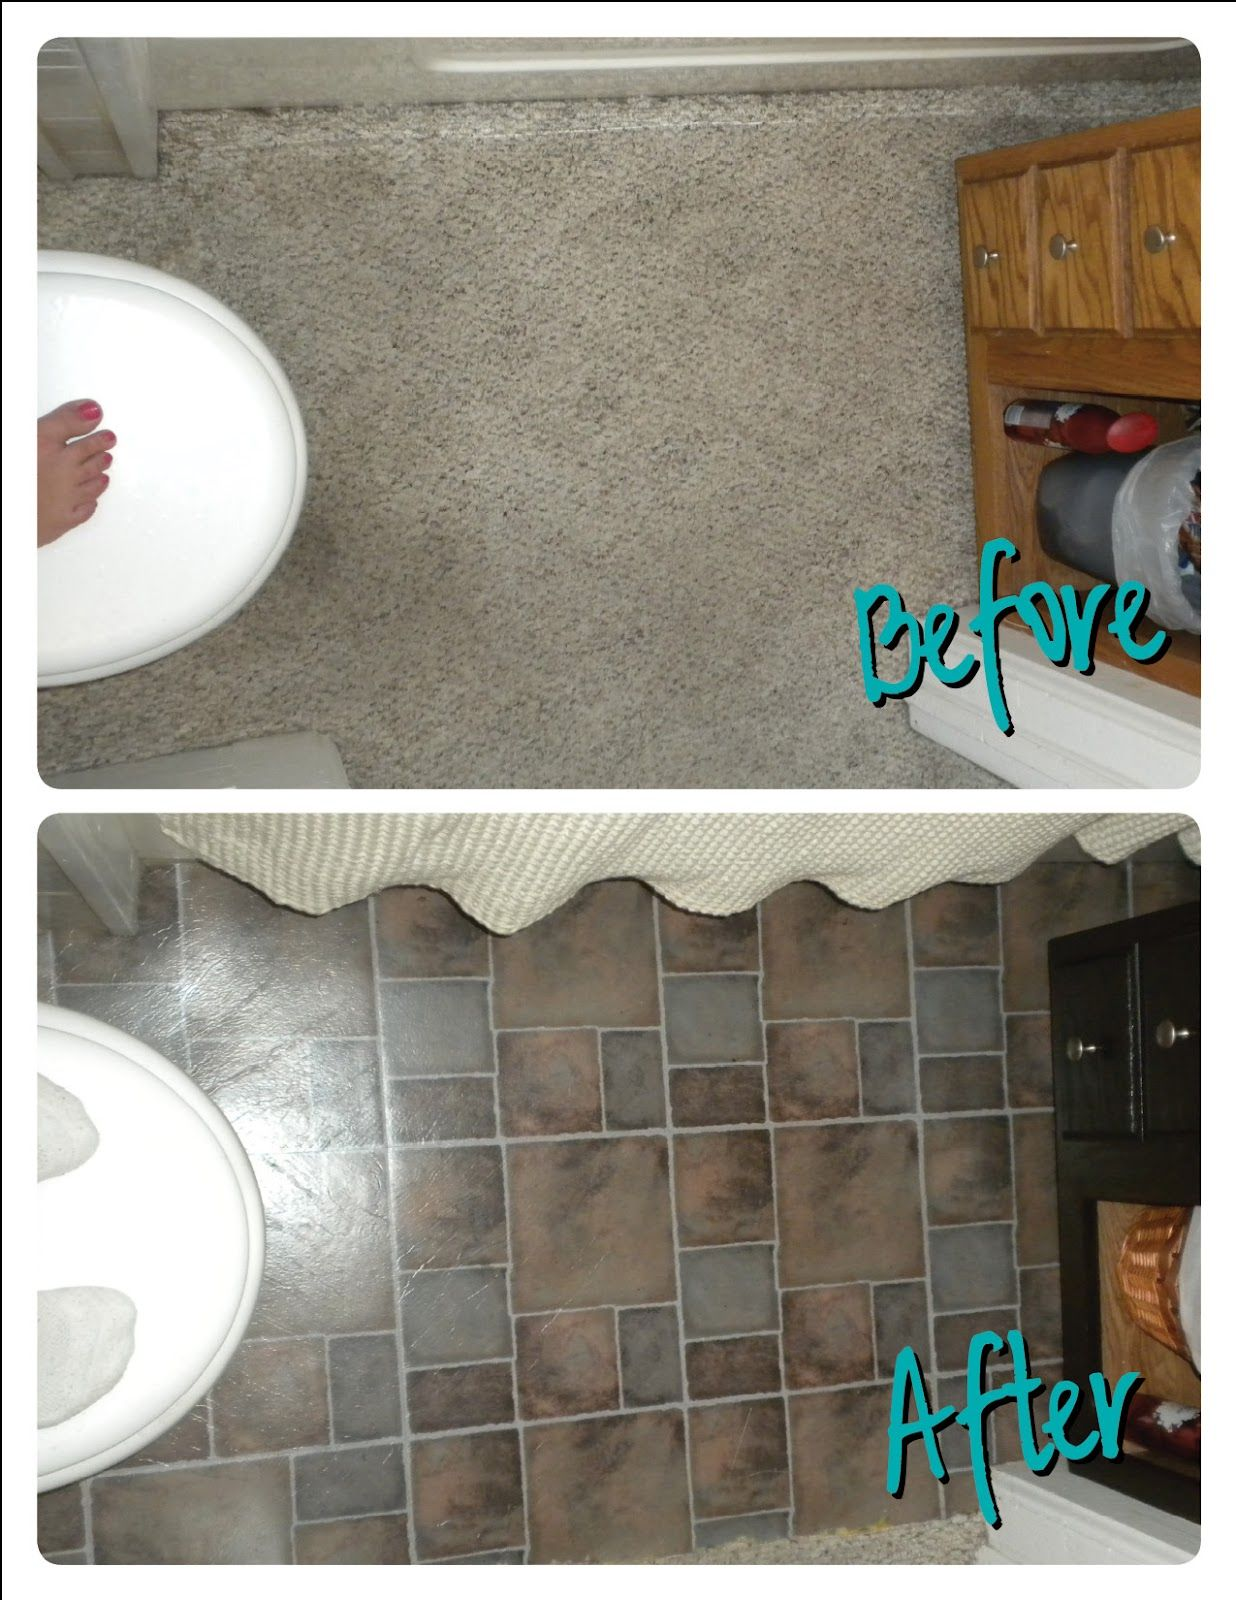 I D Like To Begin By Saying Anyone Who Installs Carpet In A Bathroom Should Get His Her Head Checked I Don T Car Bathroom Redo Bathroom Carpet Removing Carpet